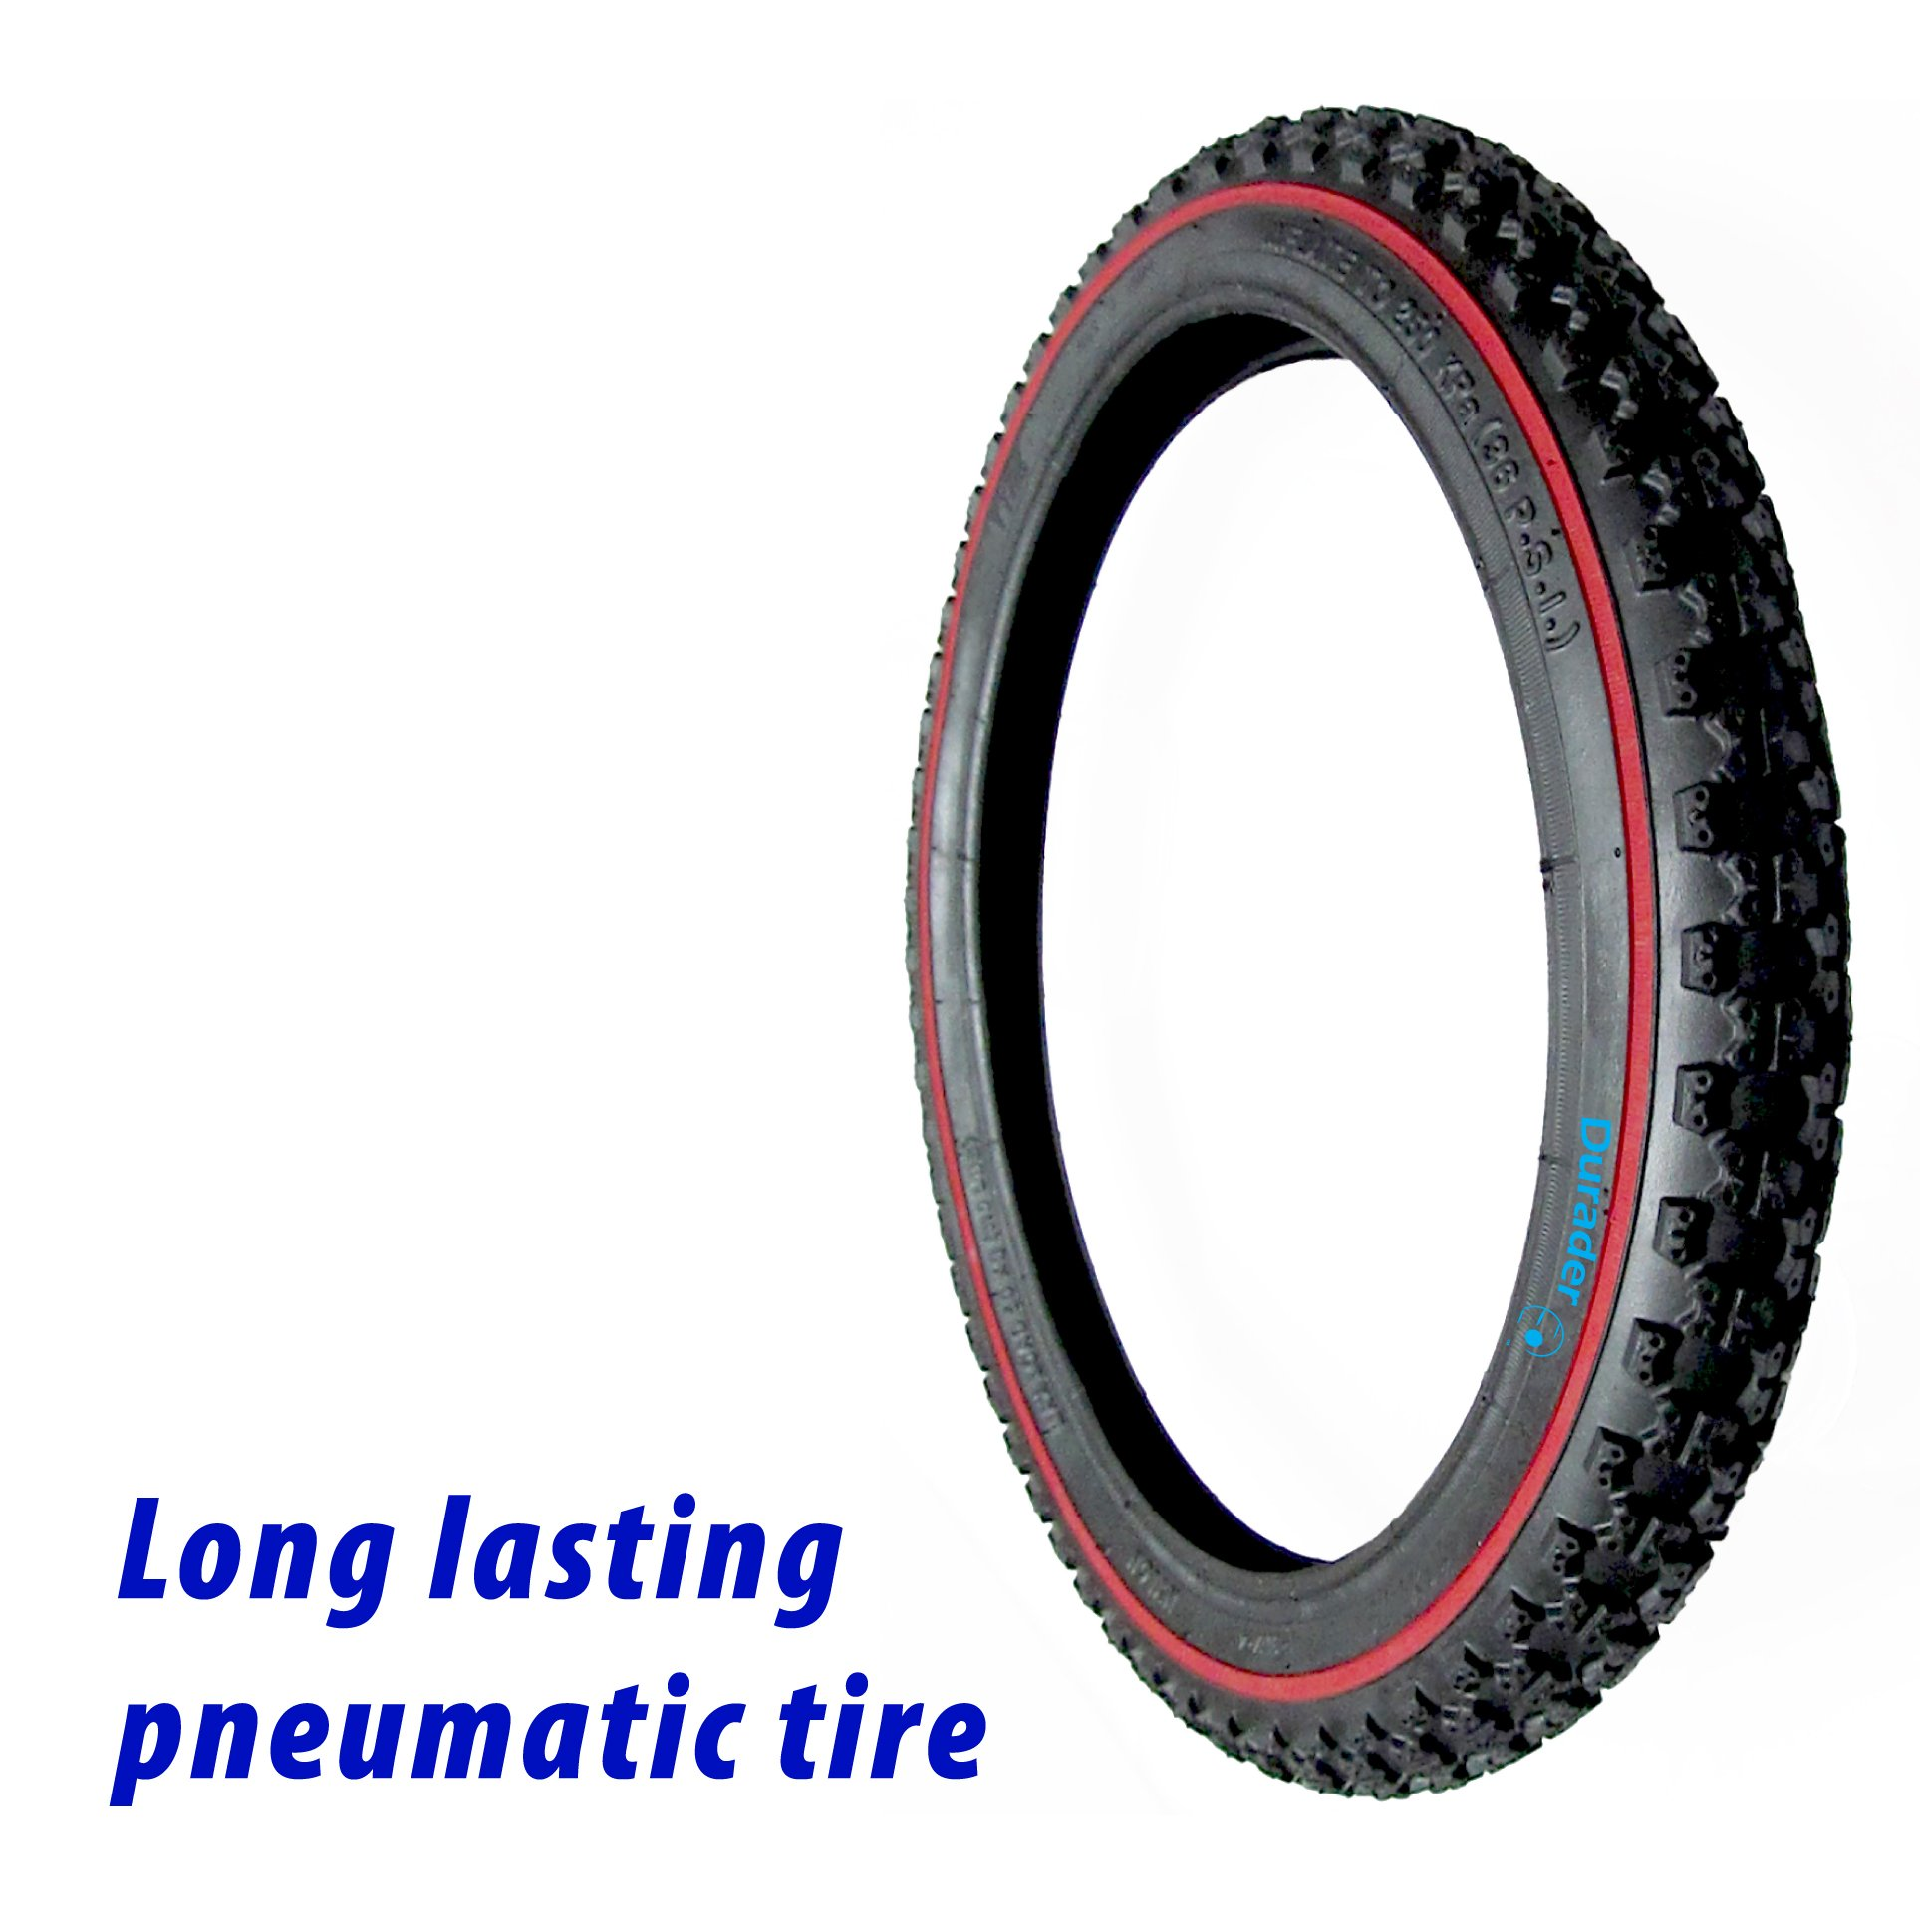 Rear tire for Baby Trend Stroller by Lineament (Image #6)